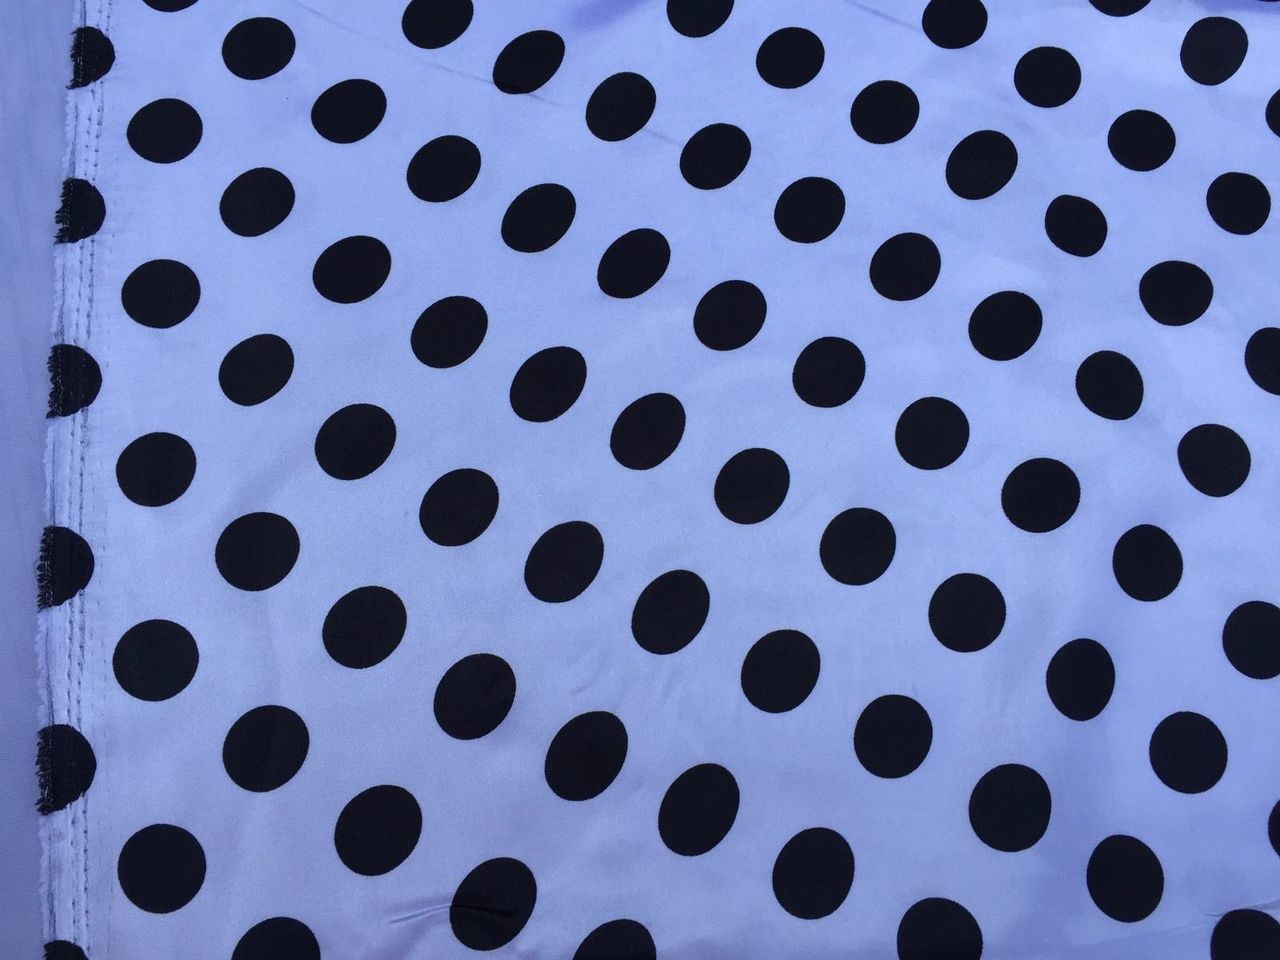 White Black 1inch Polka Dot Silky Charmeuse Satin Fabric. Sold By The Yard. - KINGDOM OF FABRICS